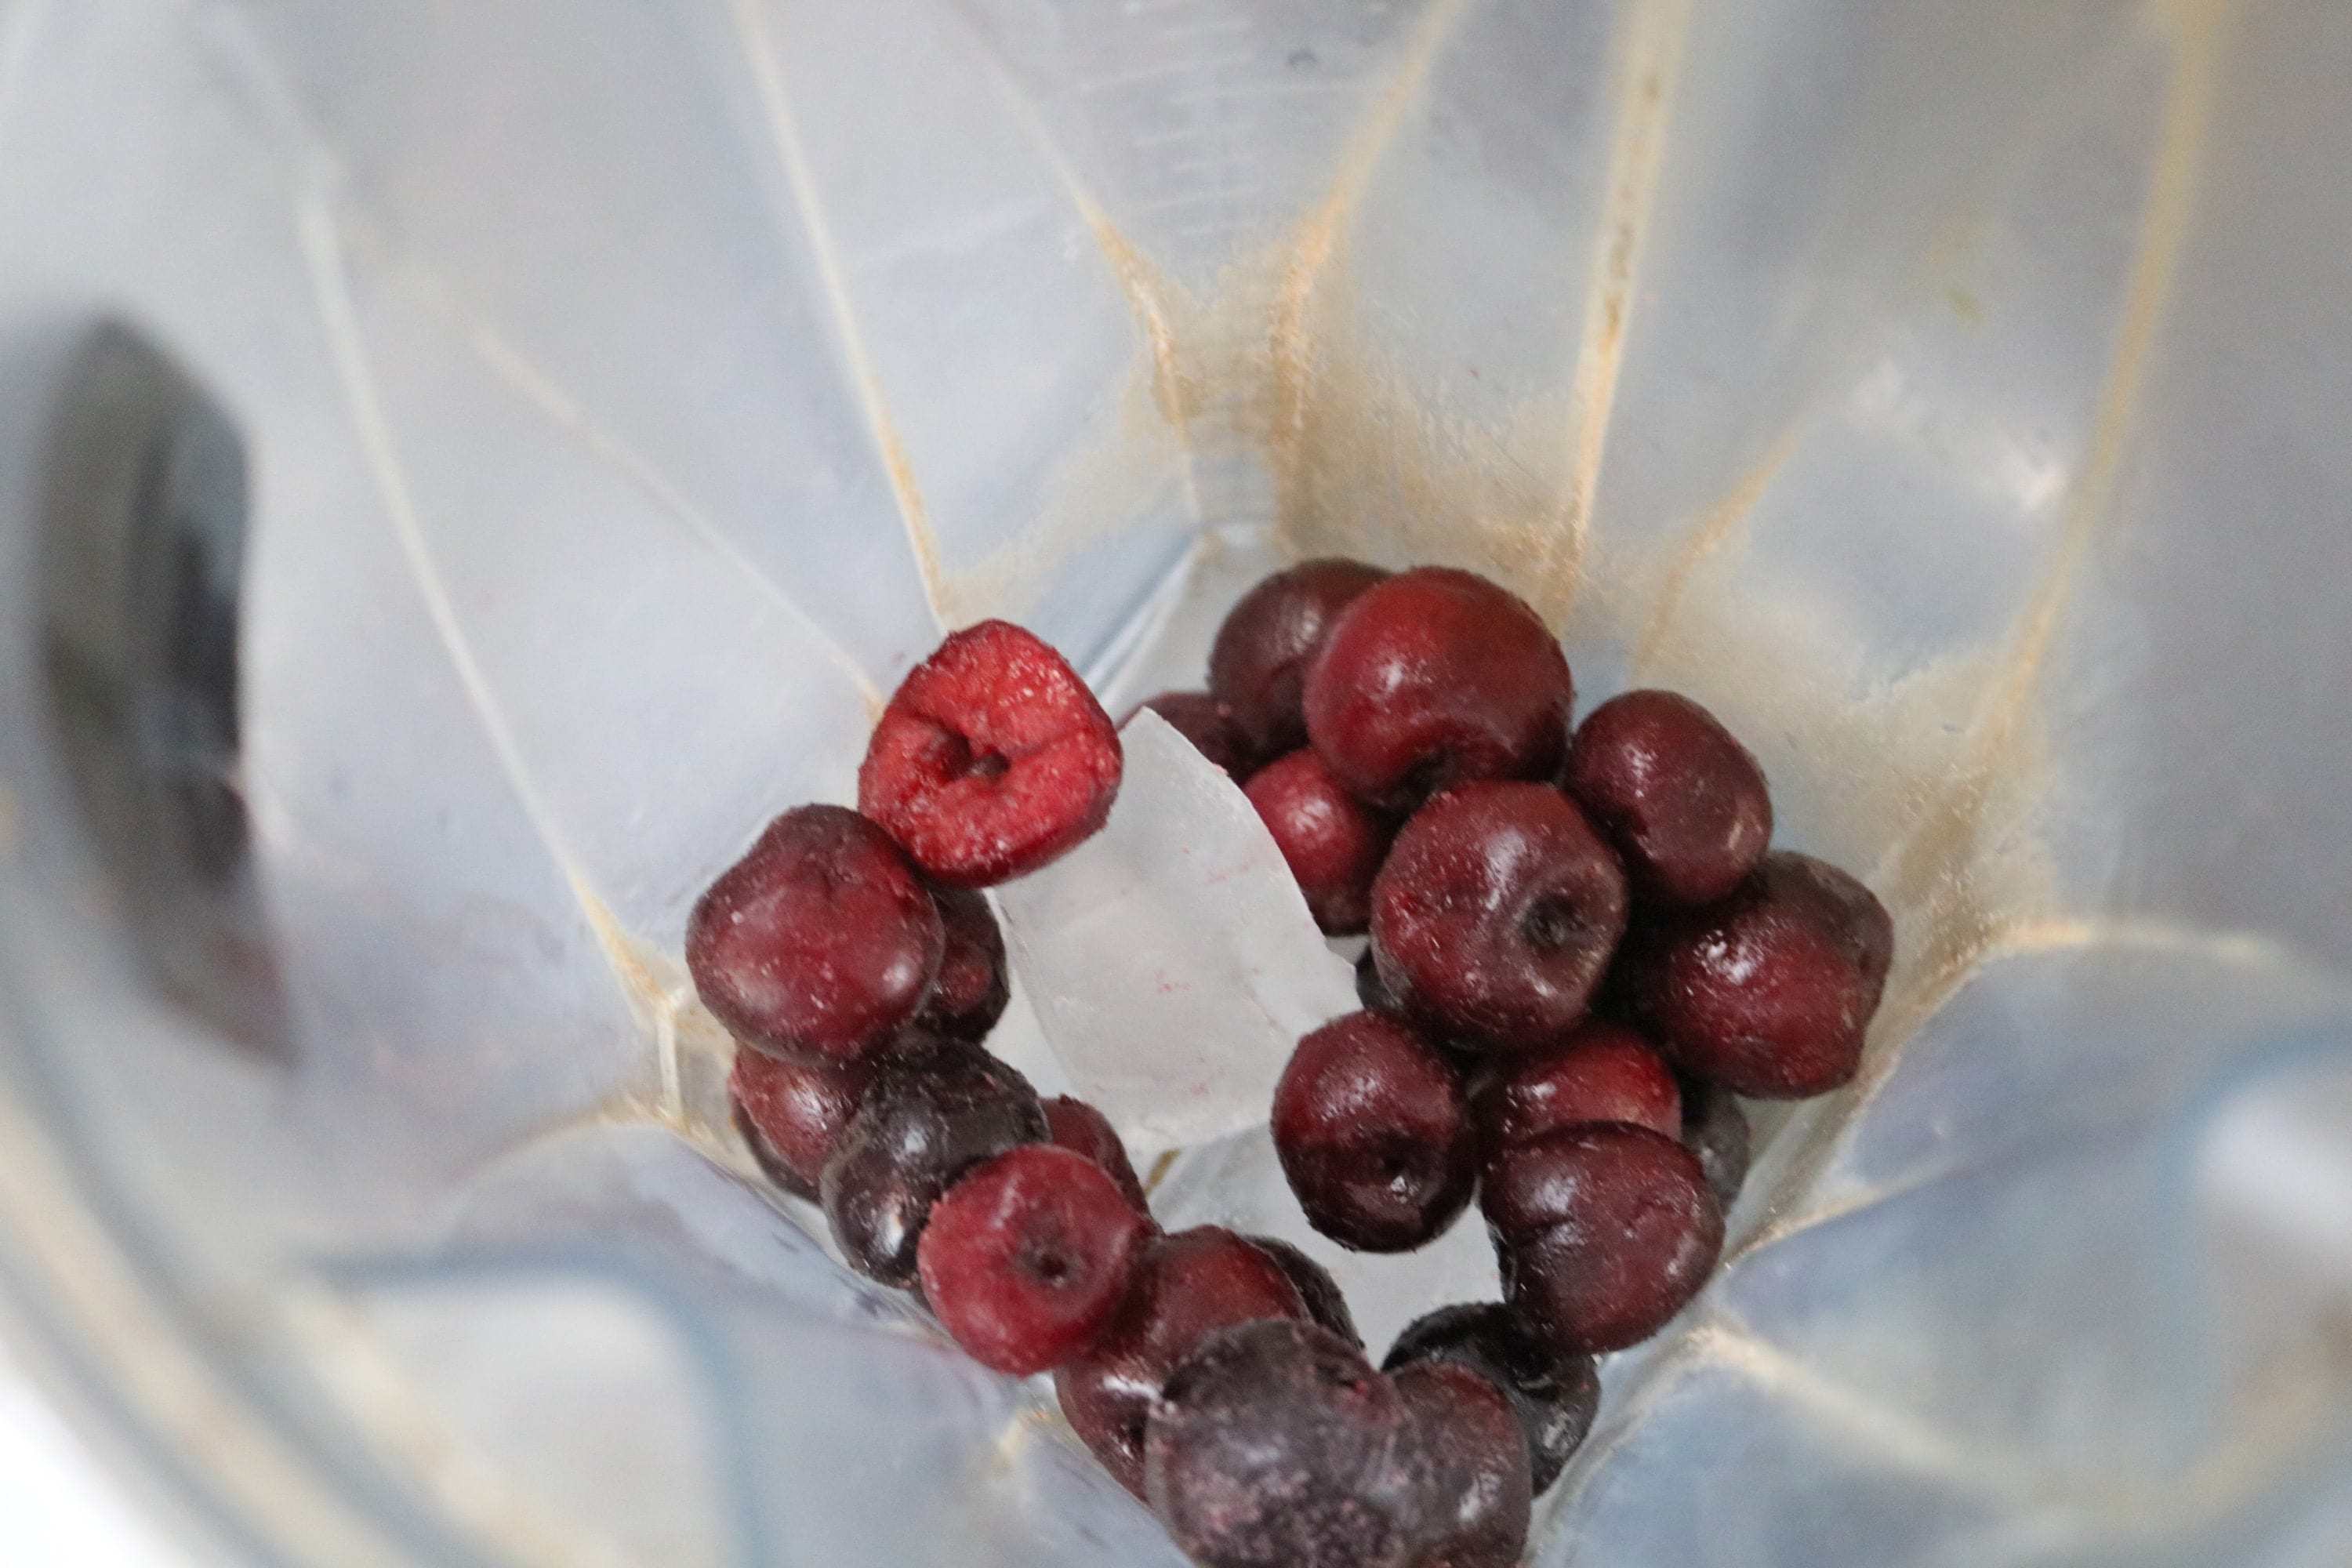 Frozen cherries in a blender with ice cubes